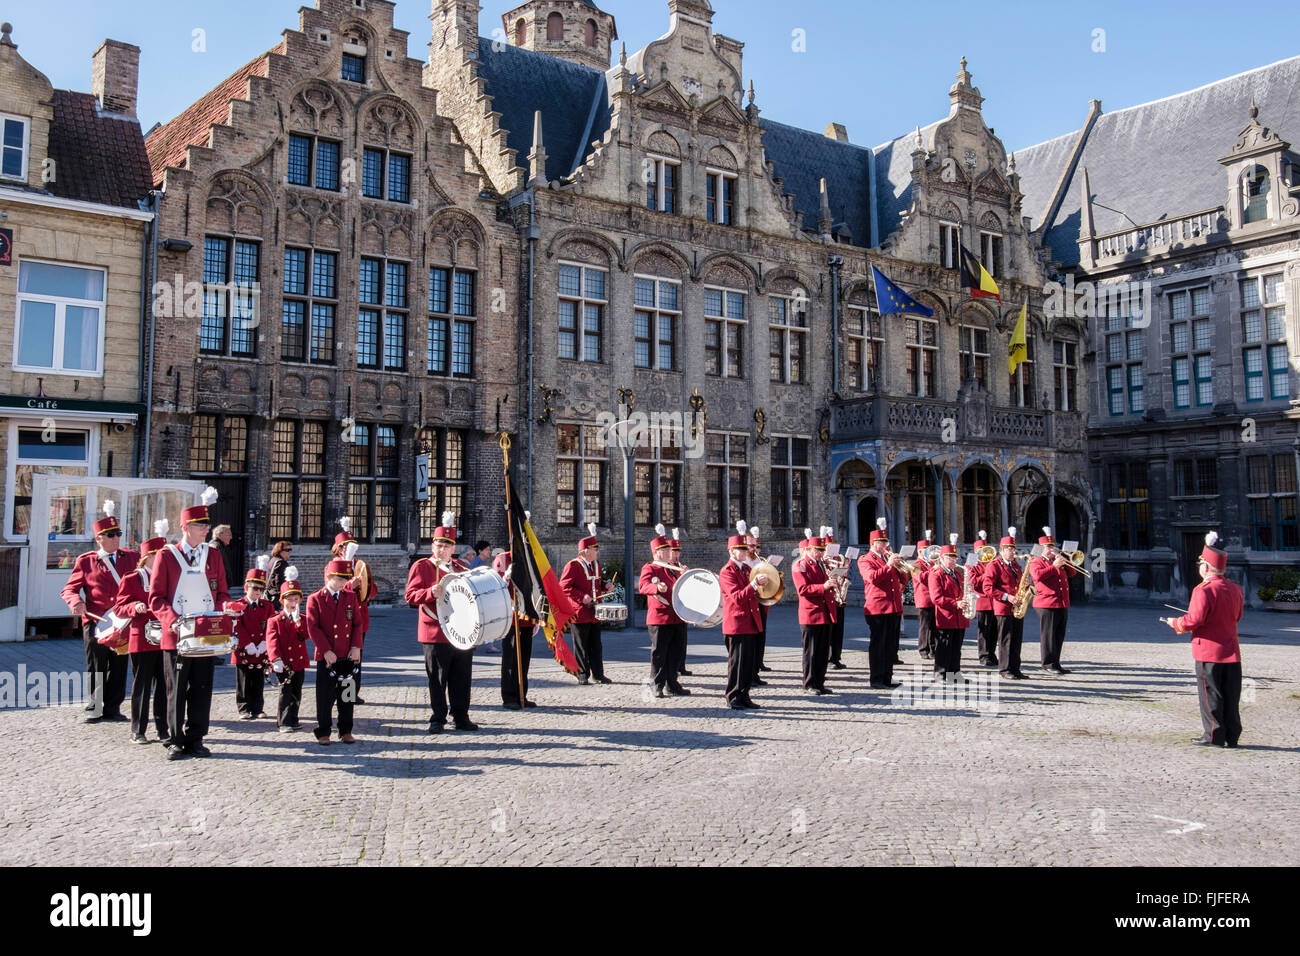 Men and young boys in the St Cecilia Kon Harmonie Band wait to play their instruments in Grote Markt, Veurne, Belgium - Stock Image